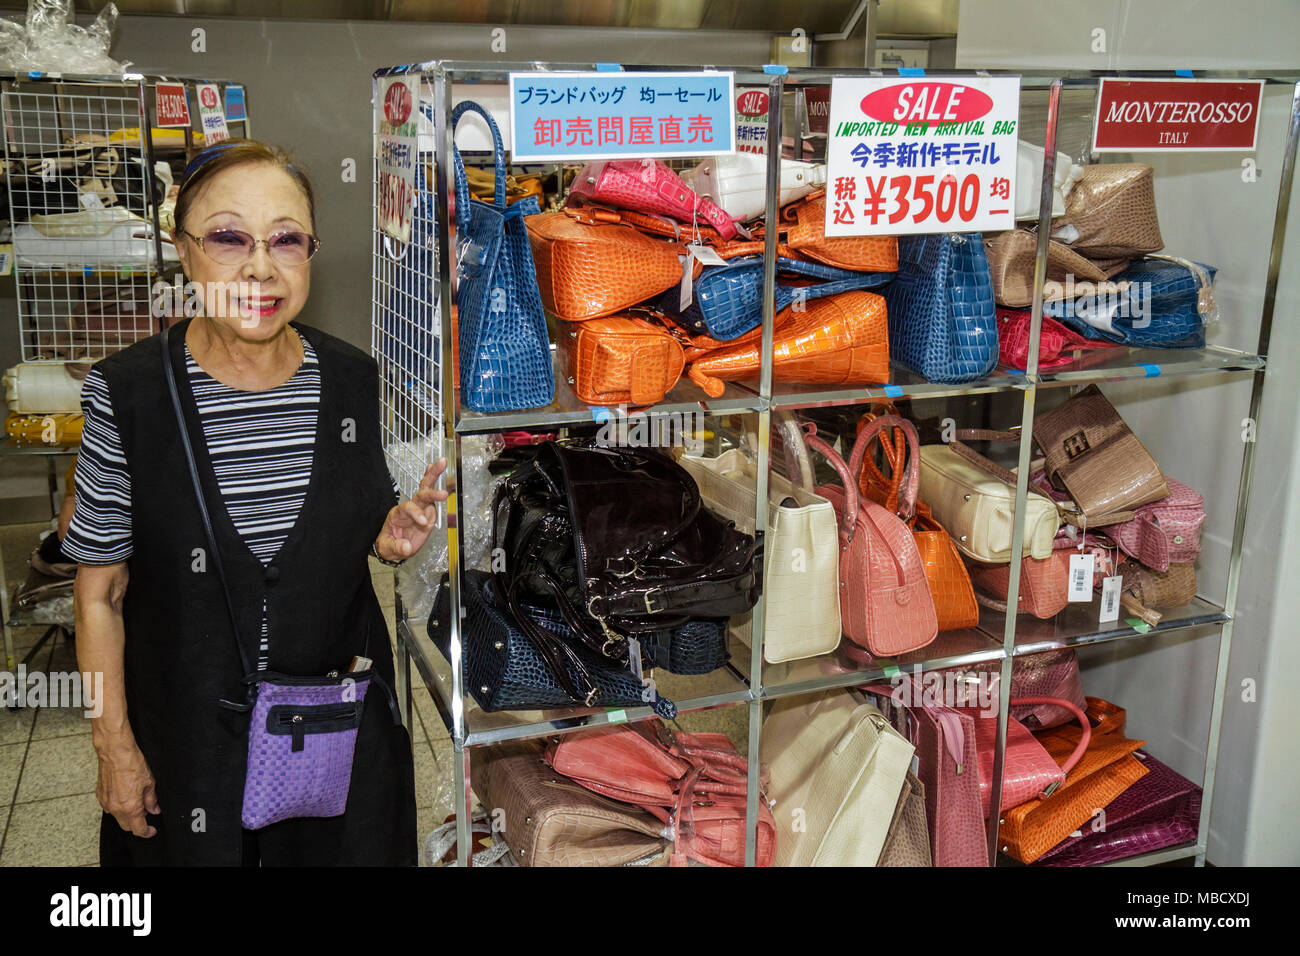 Tokyo Japan Shinjuku Shinjuku Station women's handbags purses for sale imported Italian fashion Asian woman shopping sales clerk Stock Photo